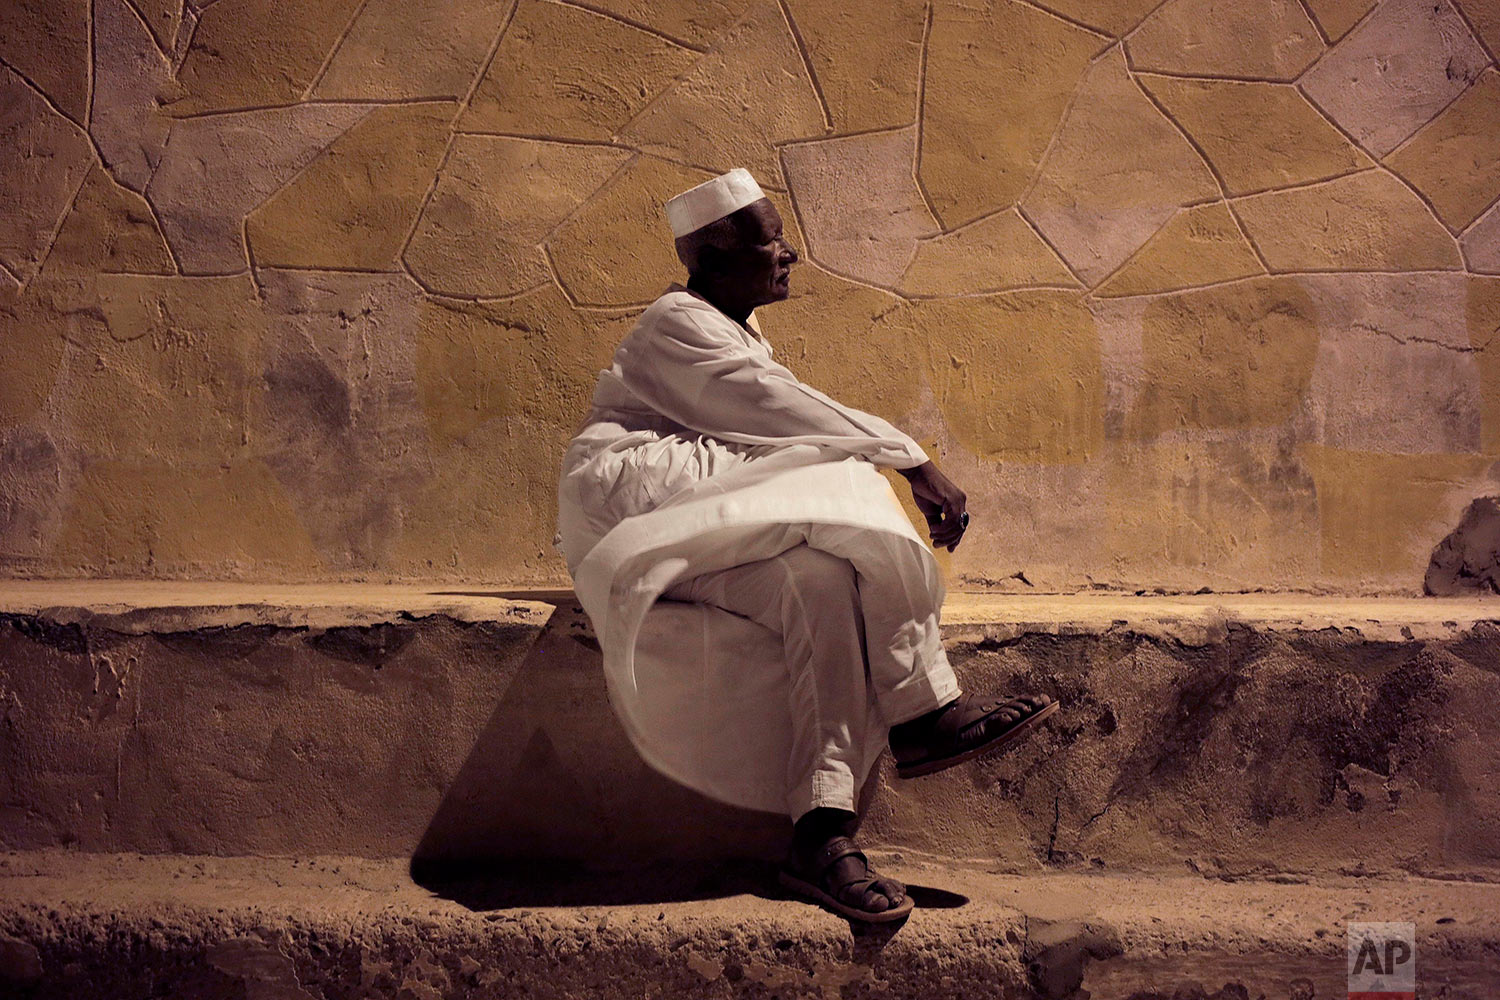 65-year old Mohammed Haroun sits in front of his home in Wadi Karkar, a new complex under construction in the desert west of Lake Nasser, Aswan, Egypt on May 7, 2018. Evicted from their ancestral lands to make way for the world's largest man-made lake behind the Aswan Dam, Egypt's Nubians have found both pain and nostalgia in memories of the peaceful and uncorrupted life they once had. (AP Photo/Nariman El-Mofty)